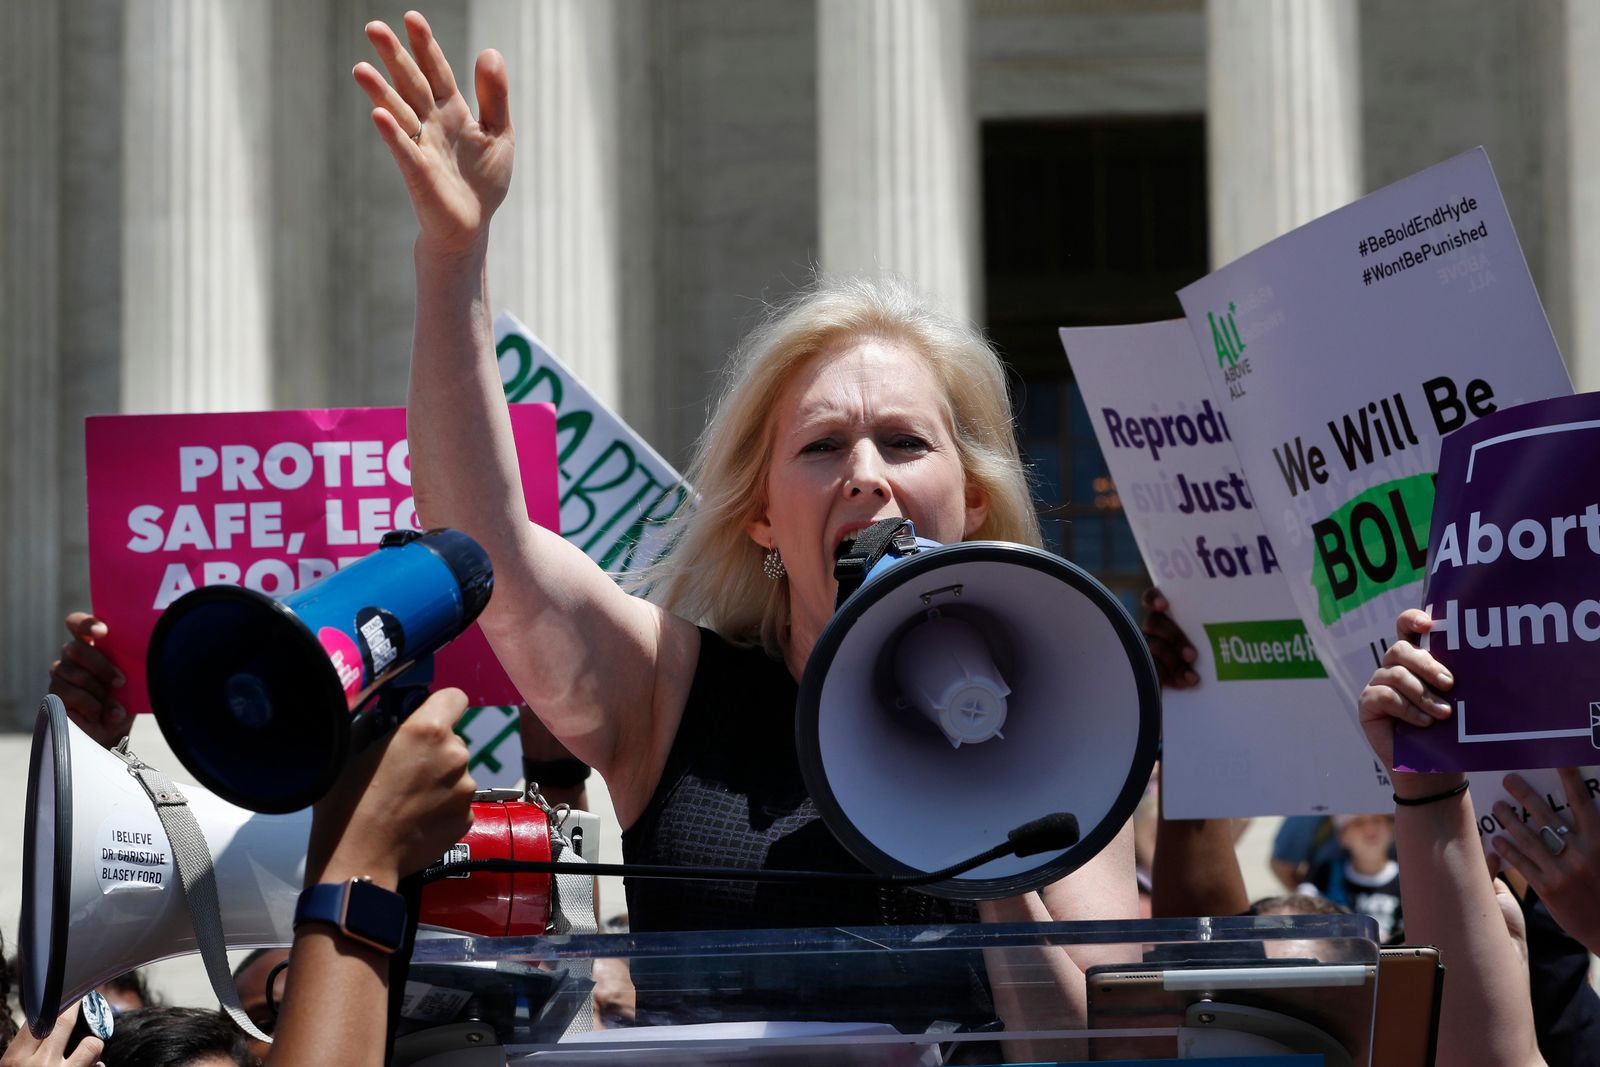 Democratic presidential candidate Sen. Kirsten Gillibrand, D-N.Y., speaks during a protest against abortion bans, Tuesday, May 21, 2019, outside the Supreme Court in Washington.{ } (AP Photo/Jacquelyn Martin)